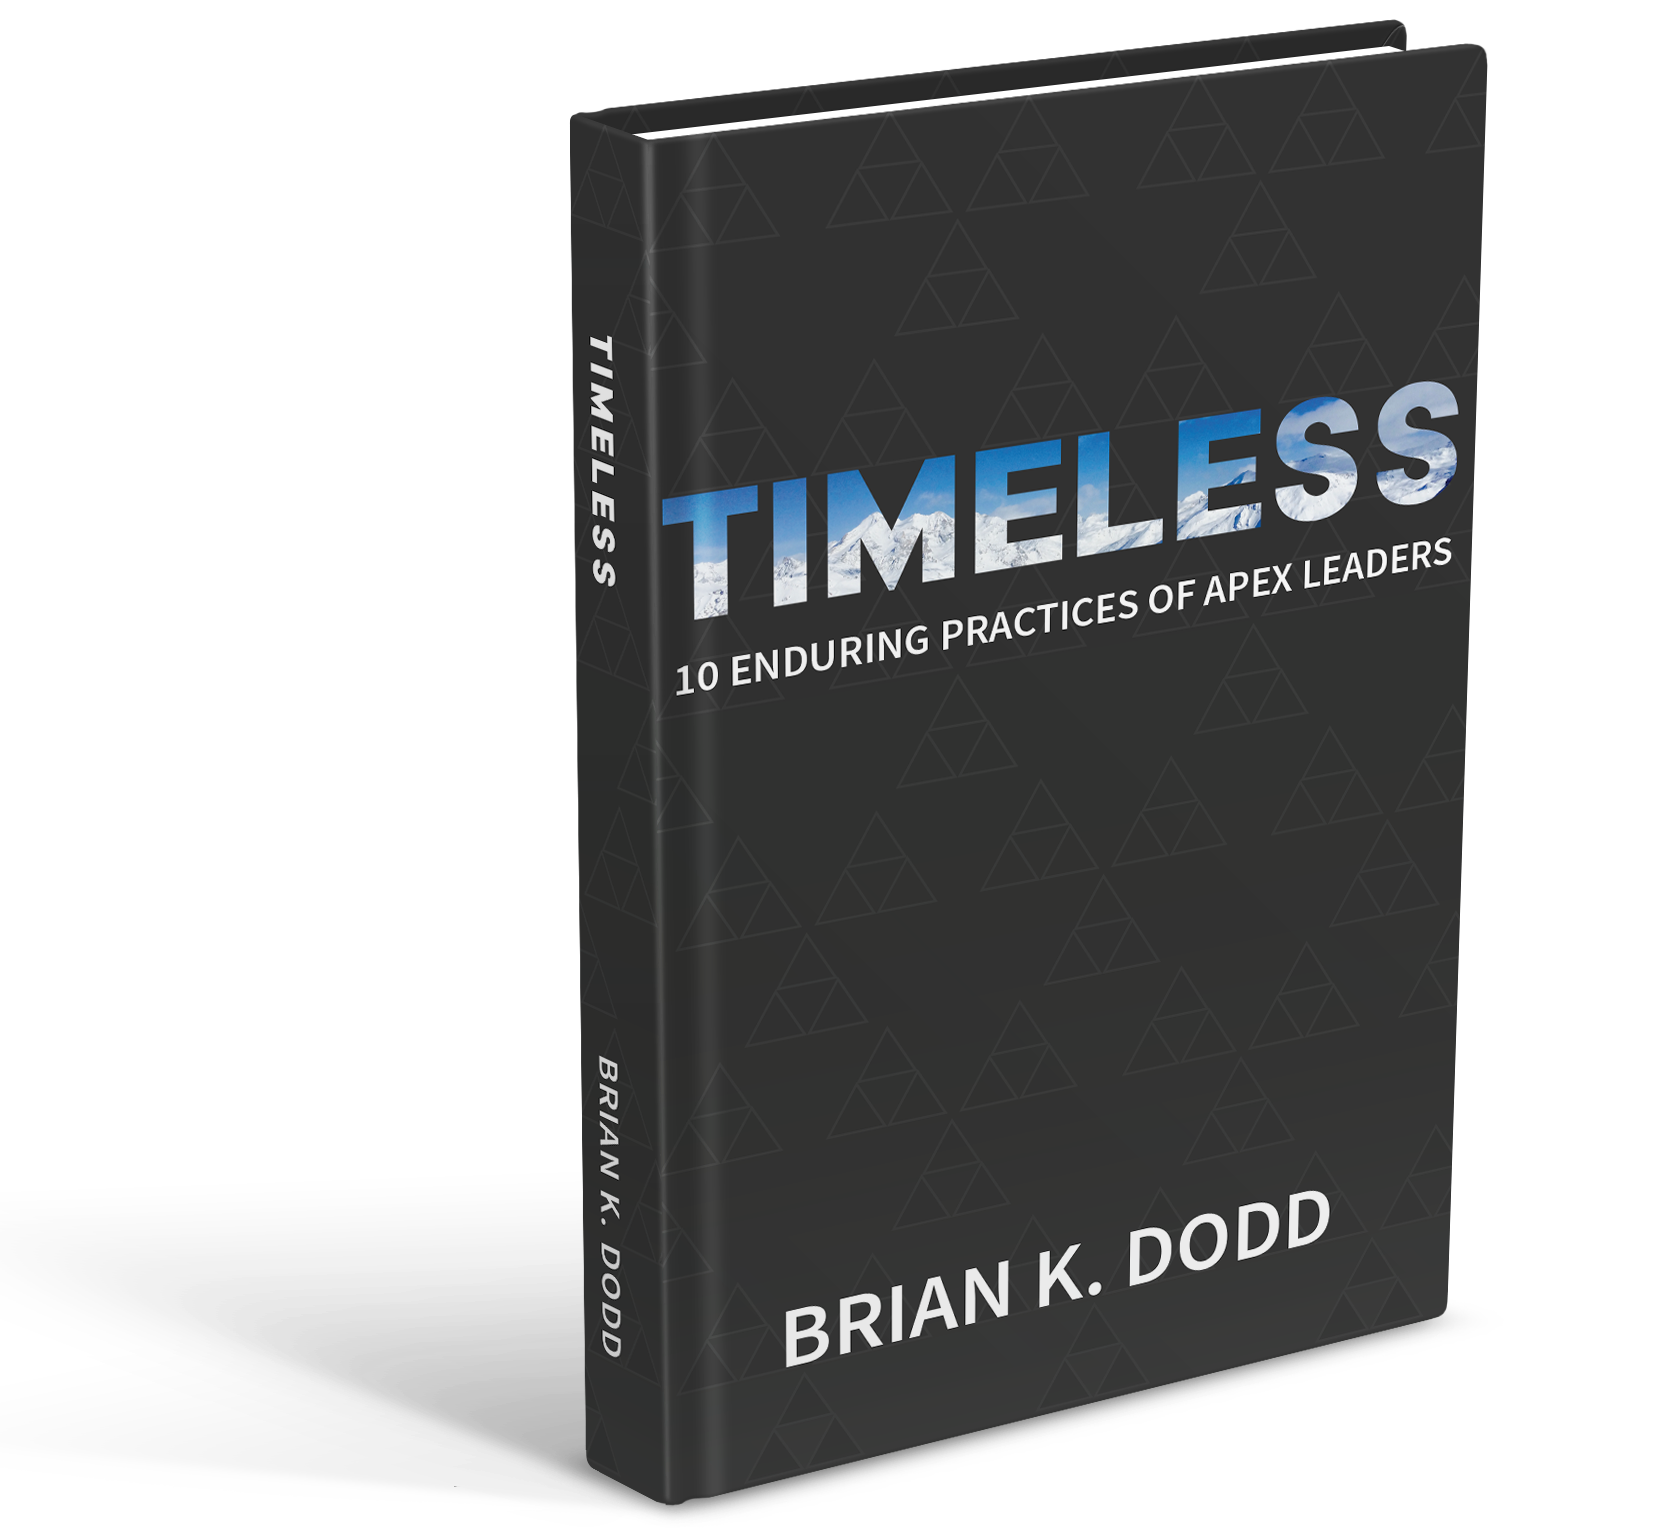 TIMELESS MOCK UP 2 TRANSPARENT.png